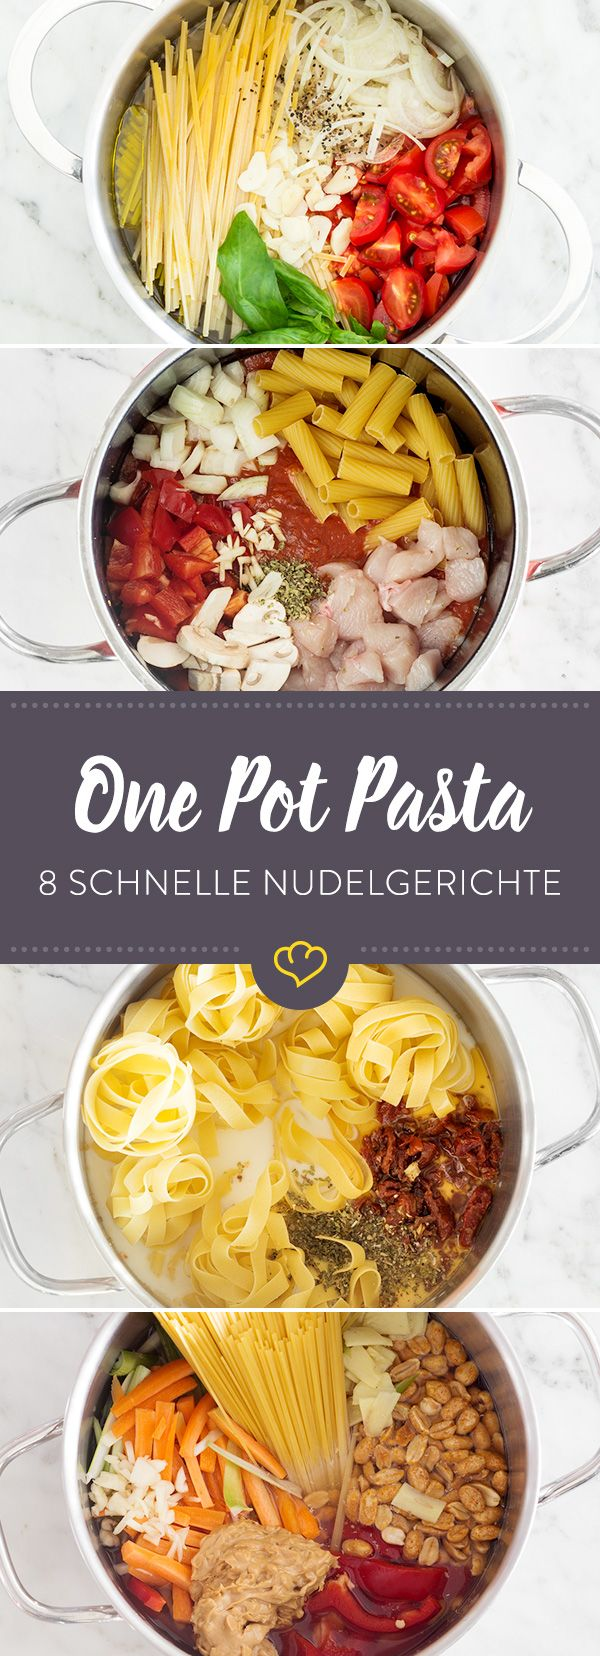 Photo of Fast enjoyment: 8 recipe ideas for one pot pasta